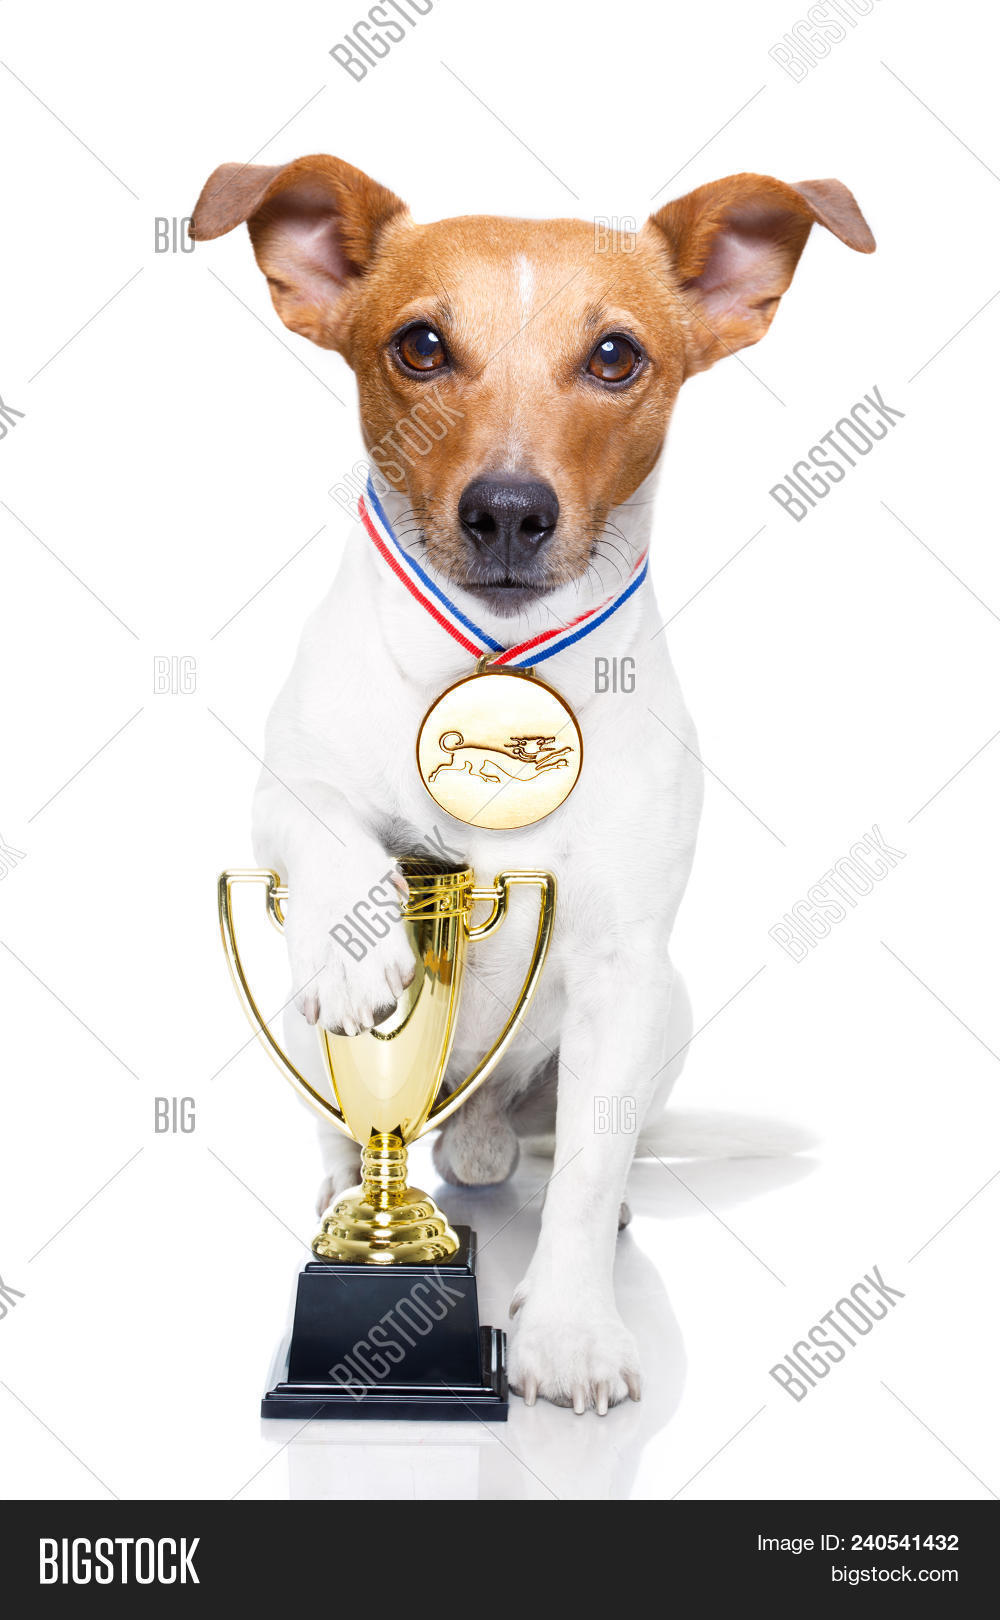 adorable,animal,award,background,beautiful,best,canine,champion,competition,contest,cup,cute,dog,doggy,exhibition,first,friend,funny,gold,honour,isolated,jack,joke,little,mascot,medal,merit,metallic,pedigree,pet,portrait,prize,puppy,purebred,russell,shiny,show,sport,strong,success,terrier,trophee,trophy,victory,white,win,winner